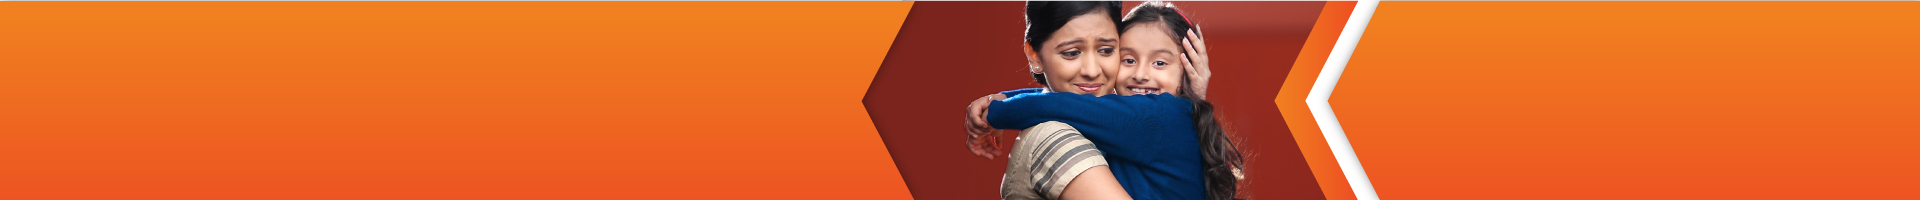 Claim Status of Your Policy | ICICI Prulife